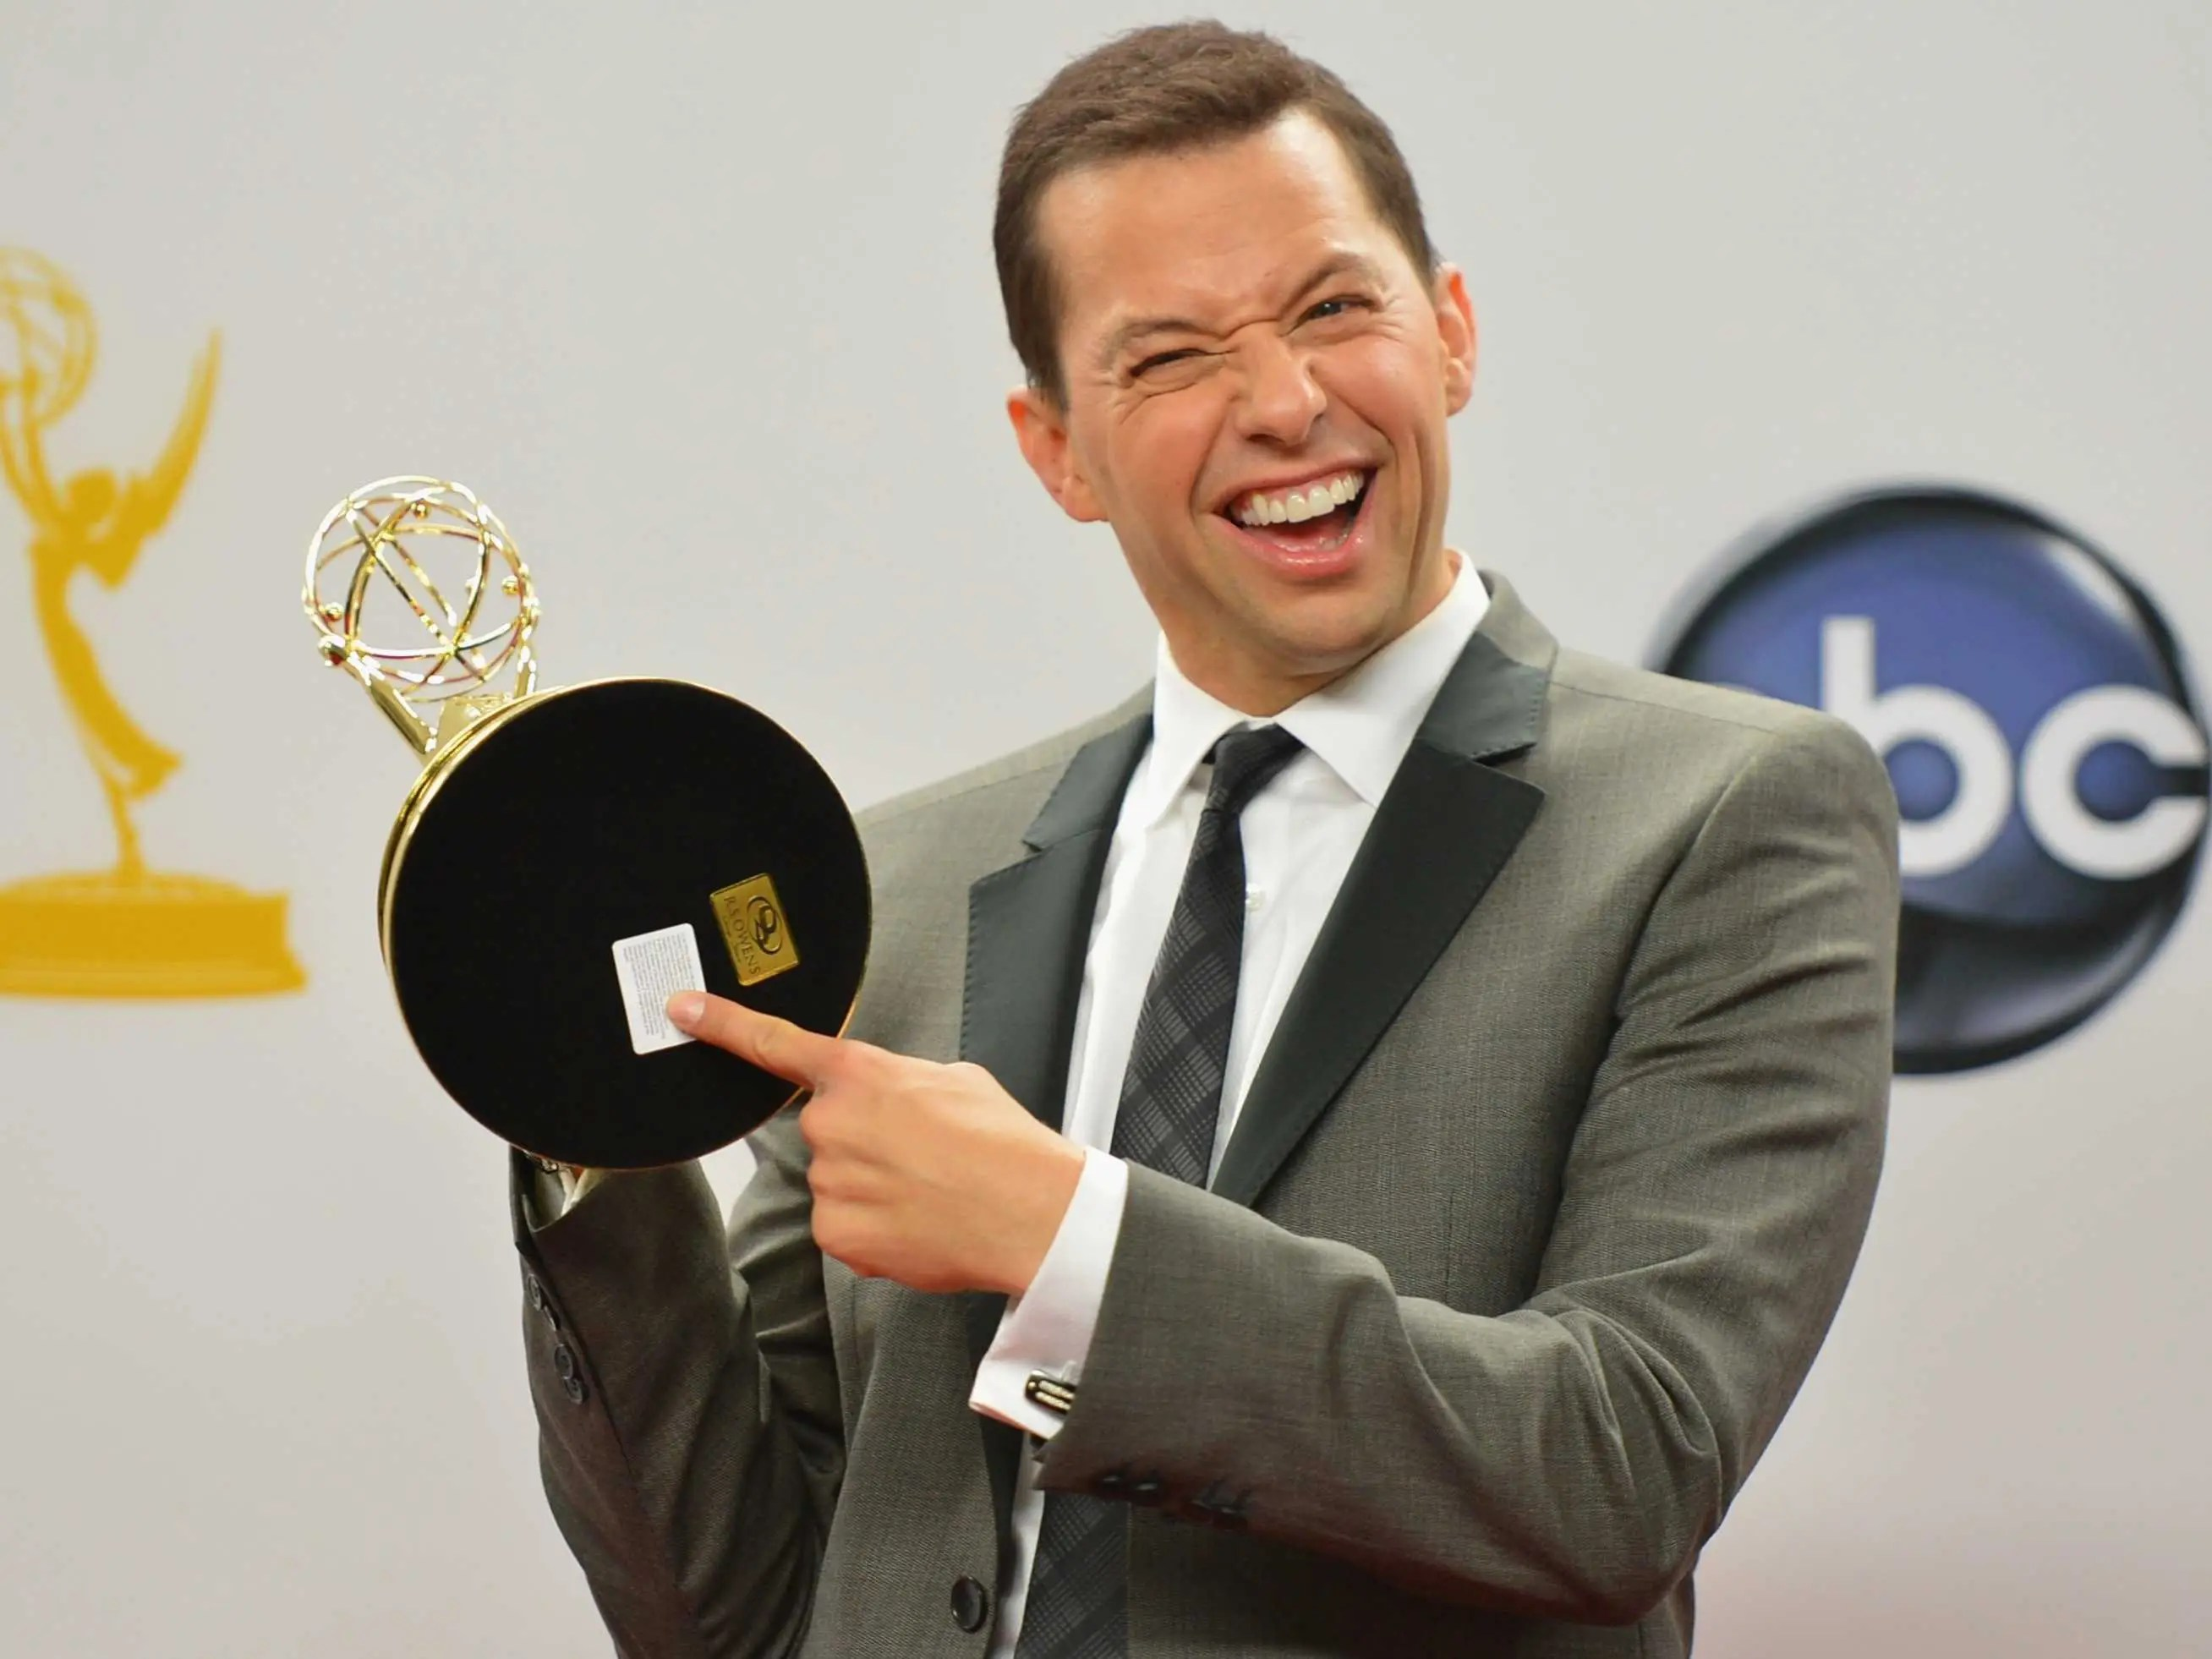 2. Jon Cryer: $14.4 million